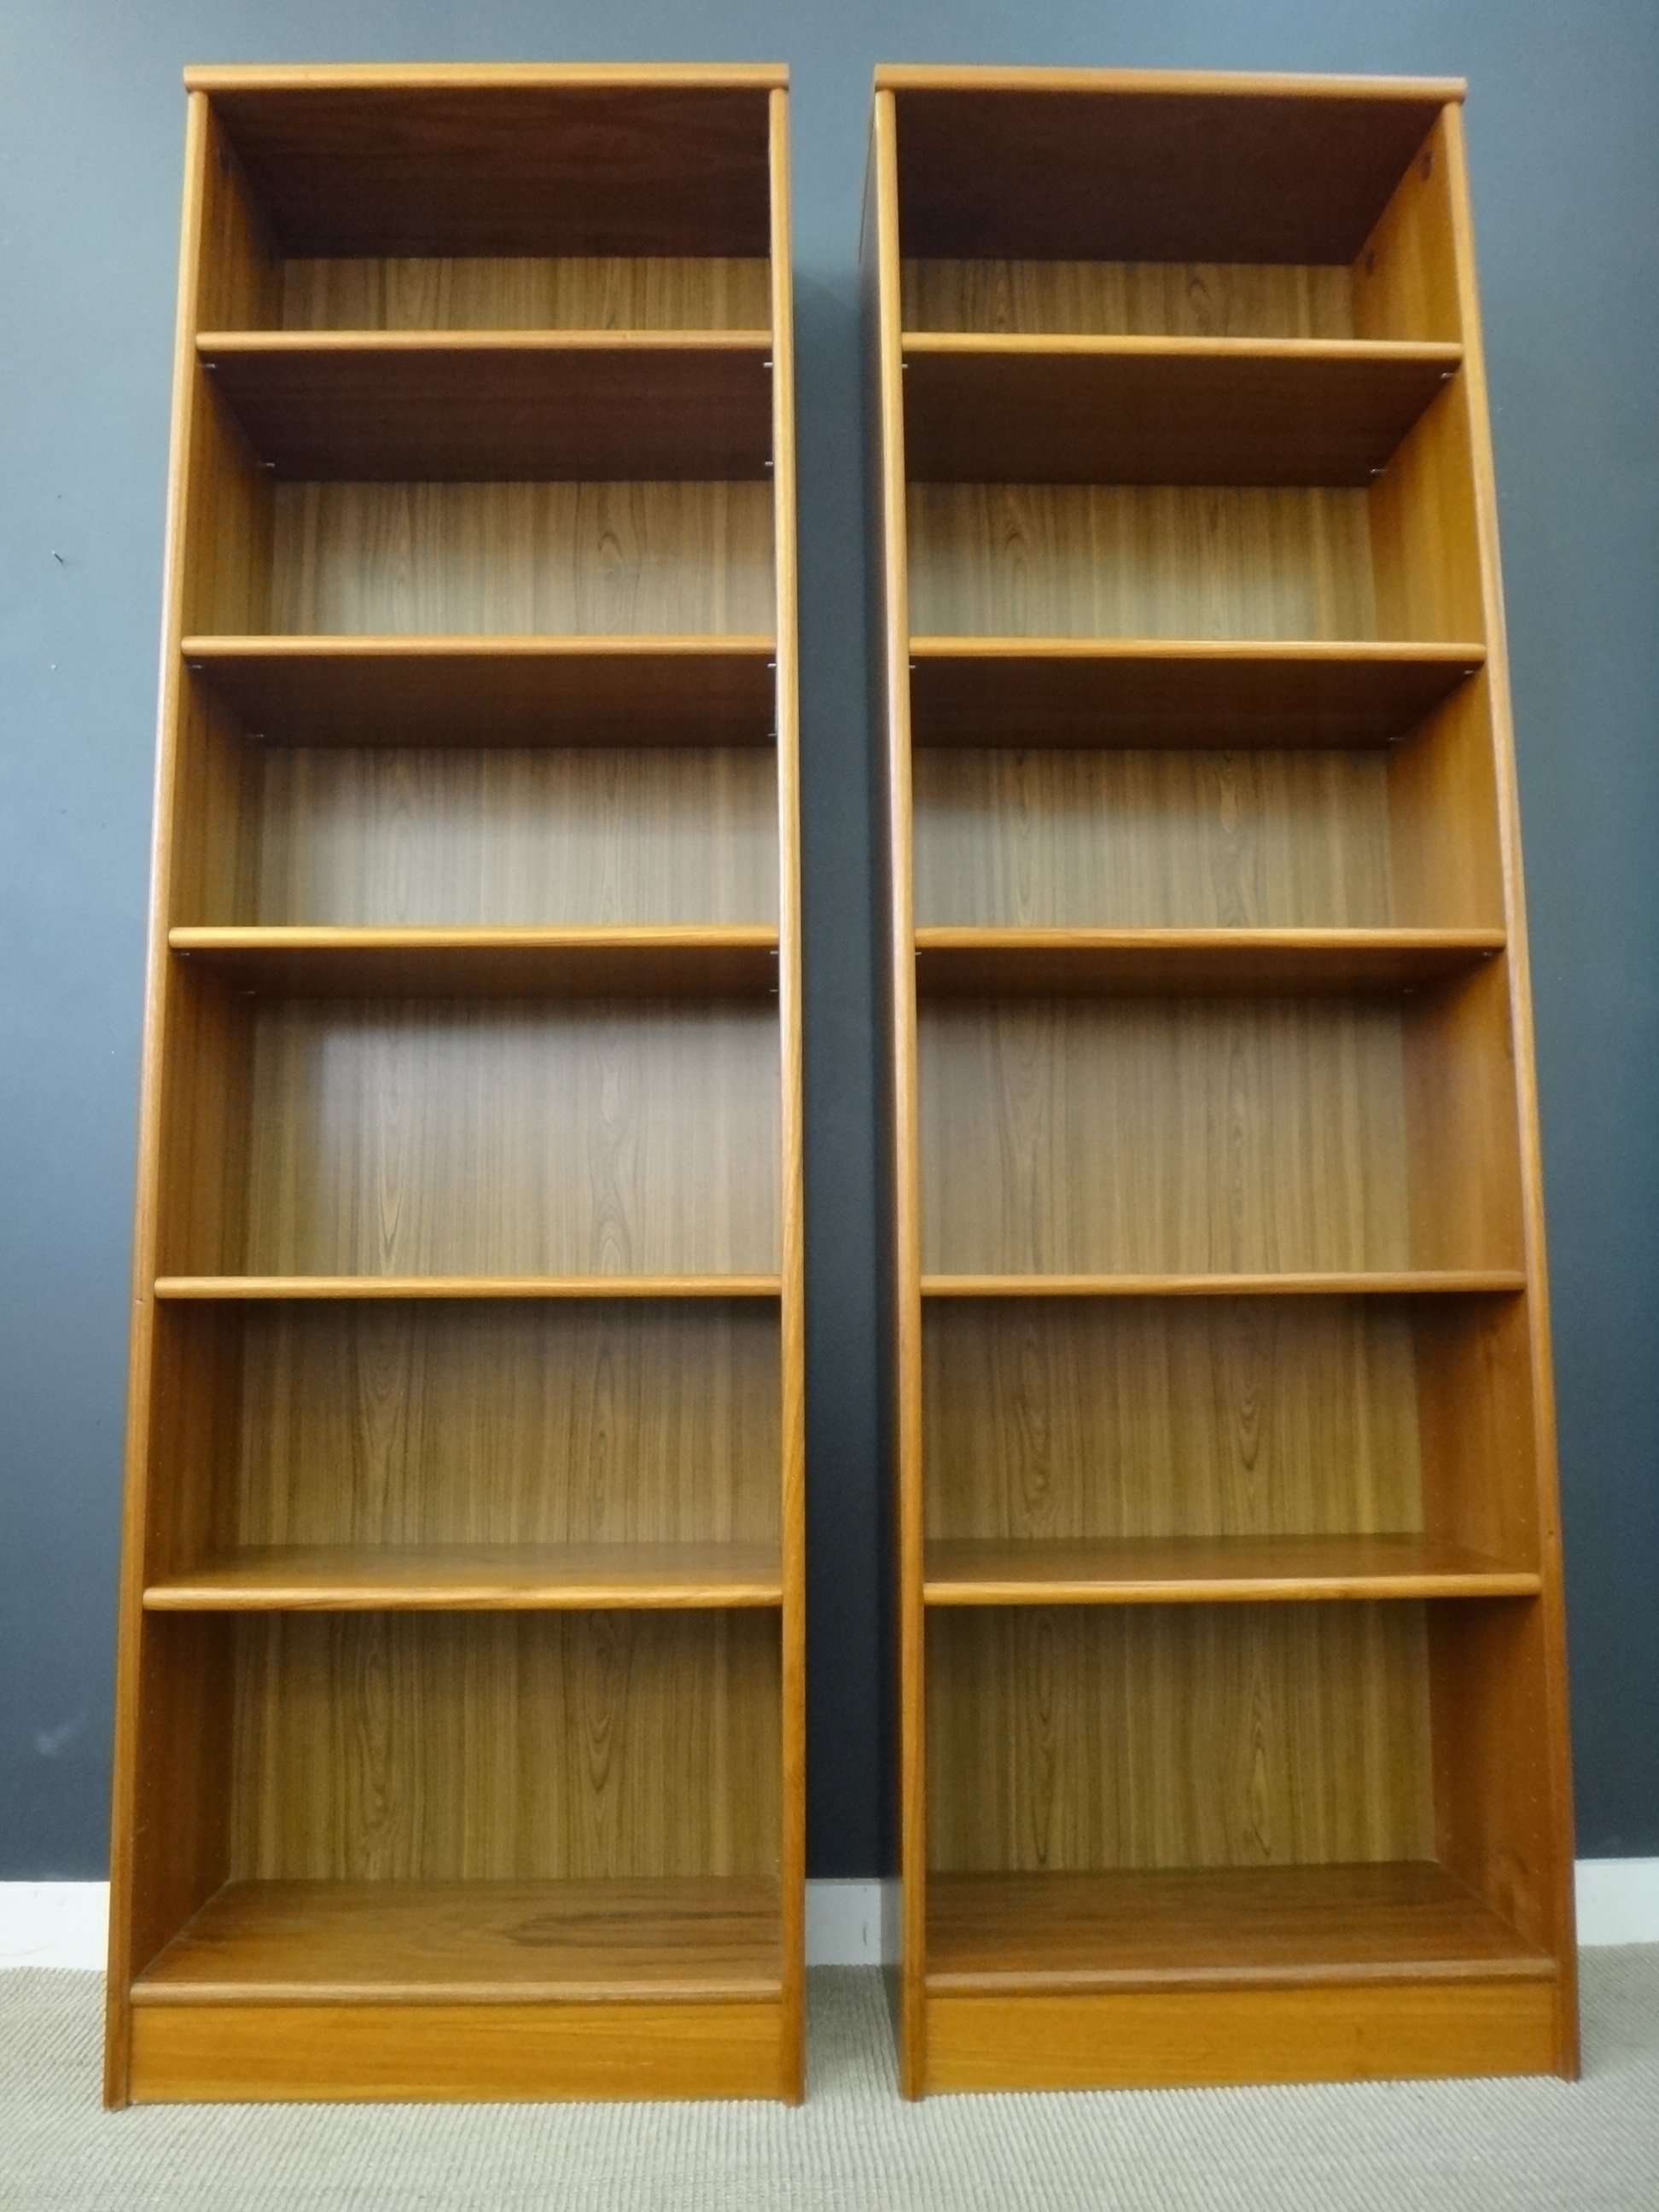 Danish Modern Shelf Units